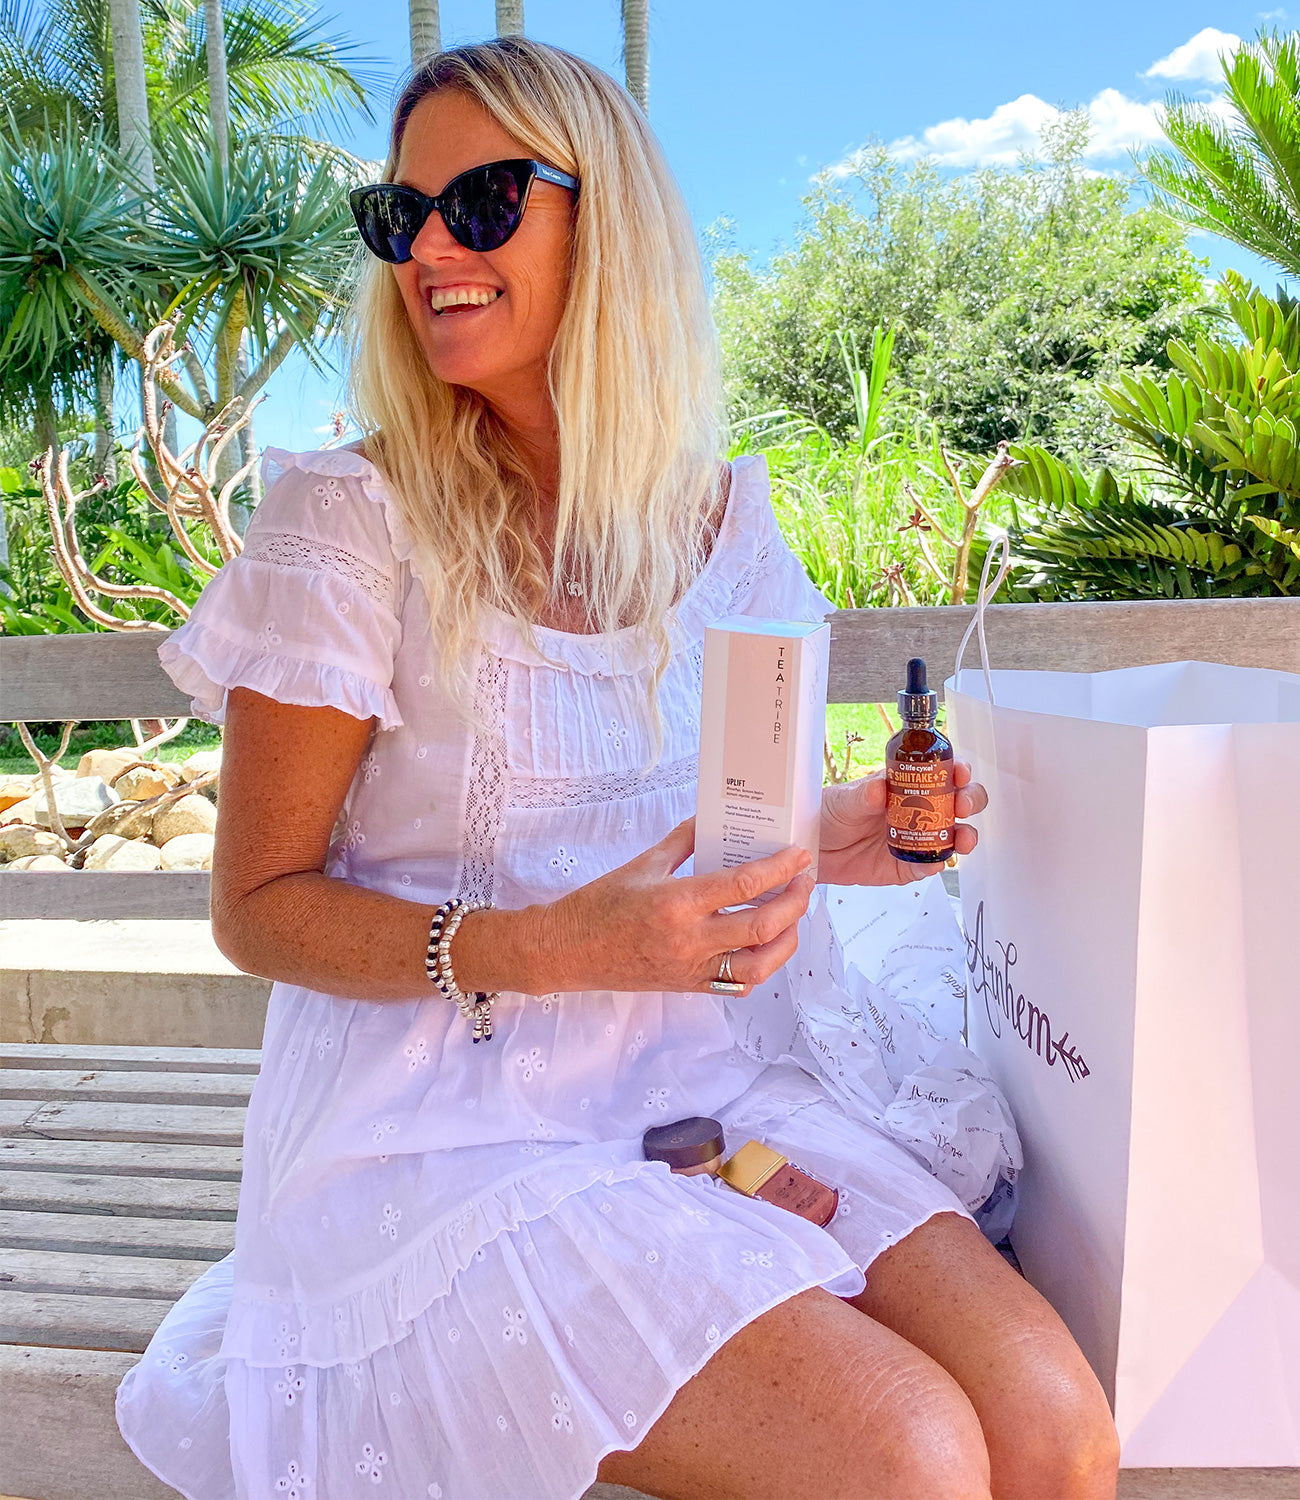 Andrea loving the Life Cykle mushroom extract and Tea Tribe Cleansing Tea